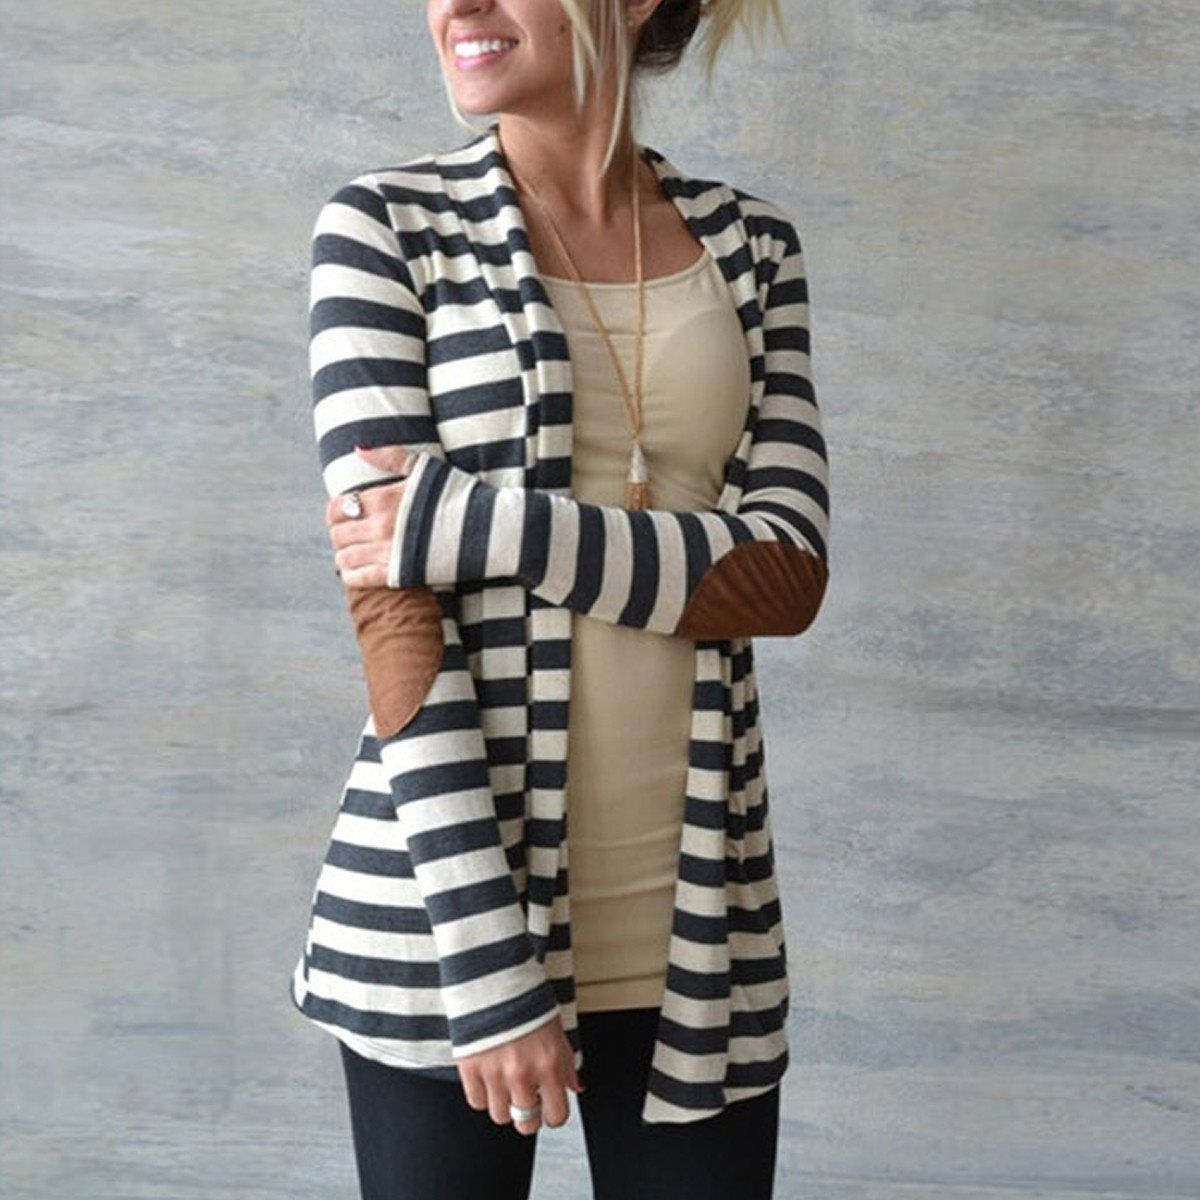 New Fashion 2018 Autumn Outerwear Women Long Sleeve <font><b>Striped</b></font> Printed Cardigan Casual Elbow Patchwork Knitted Sweater Plus Size